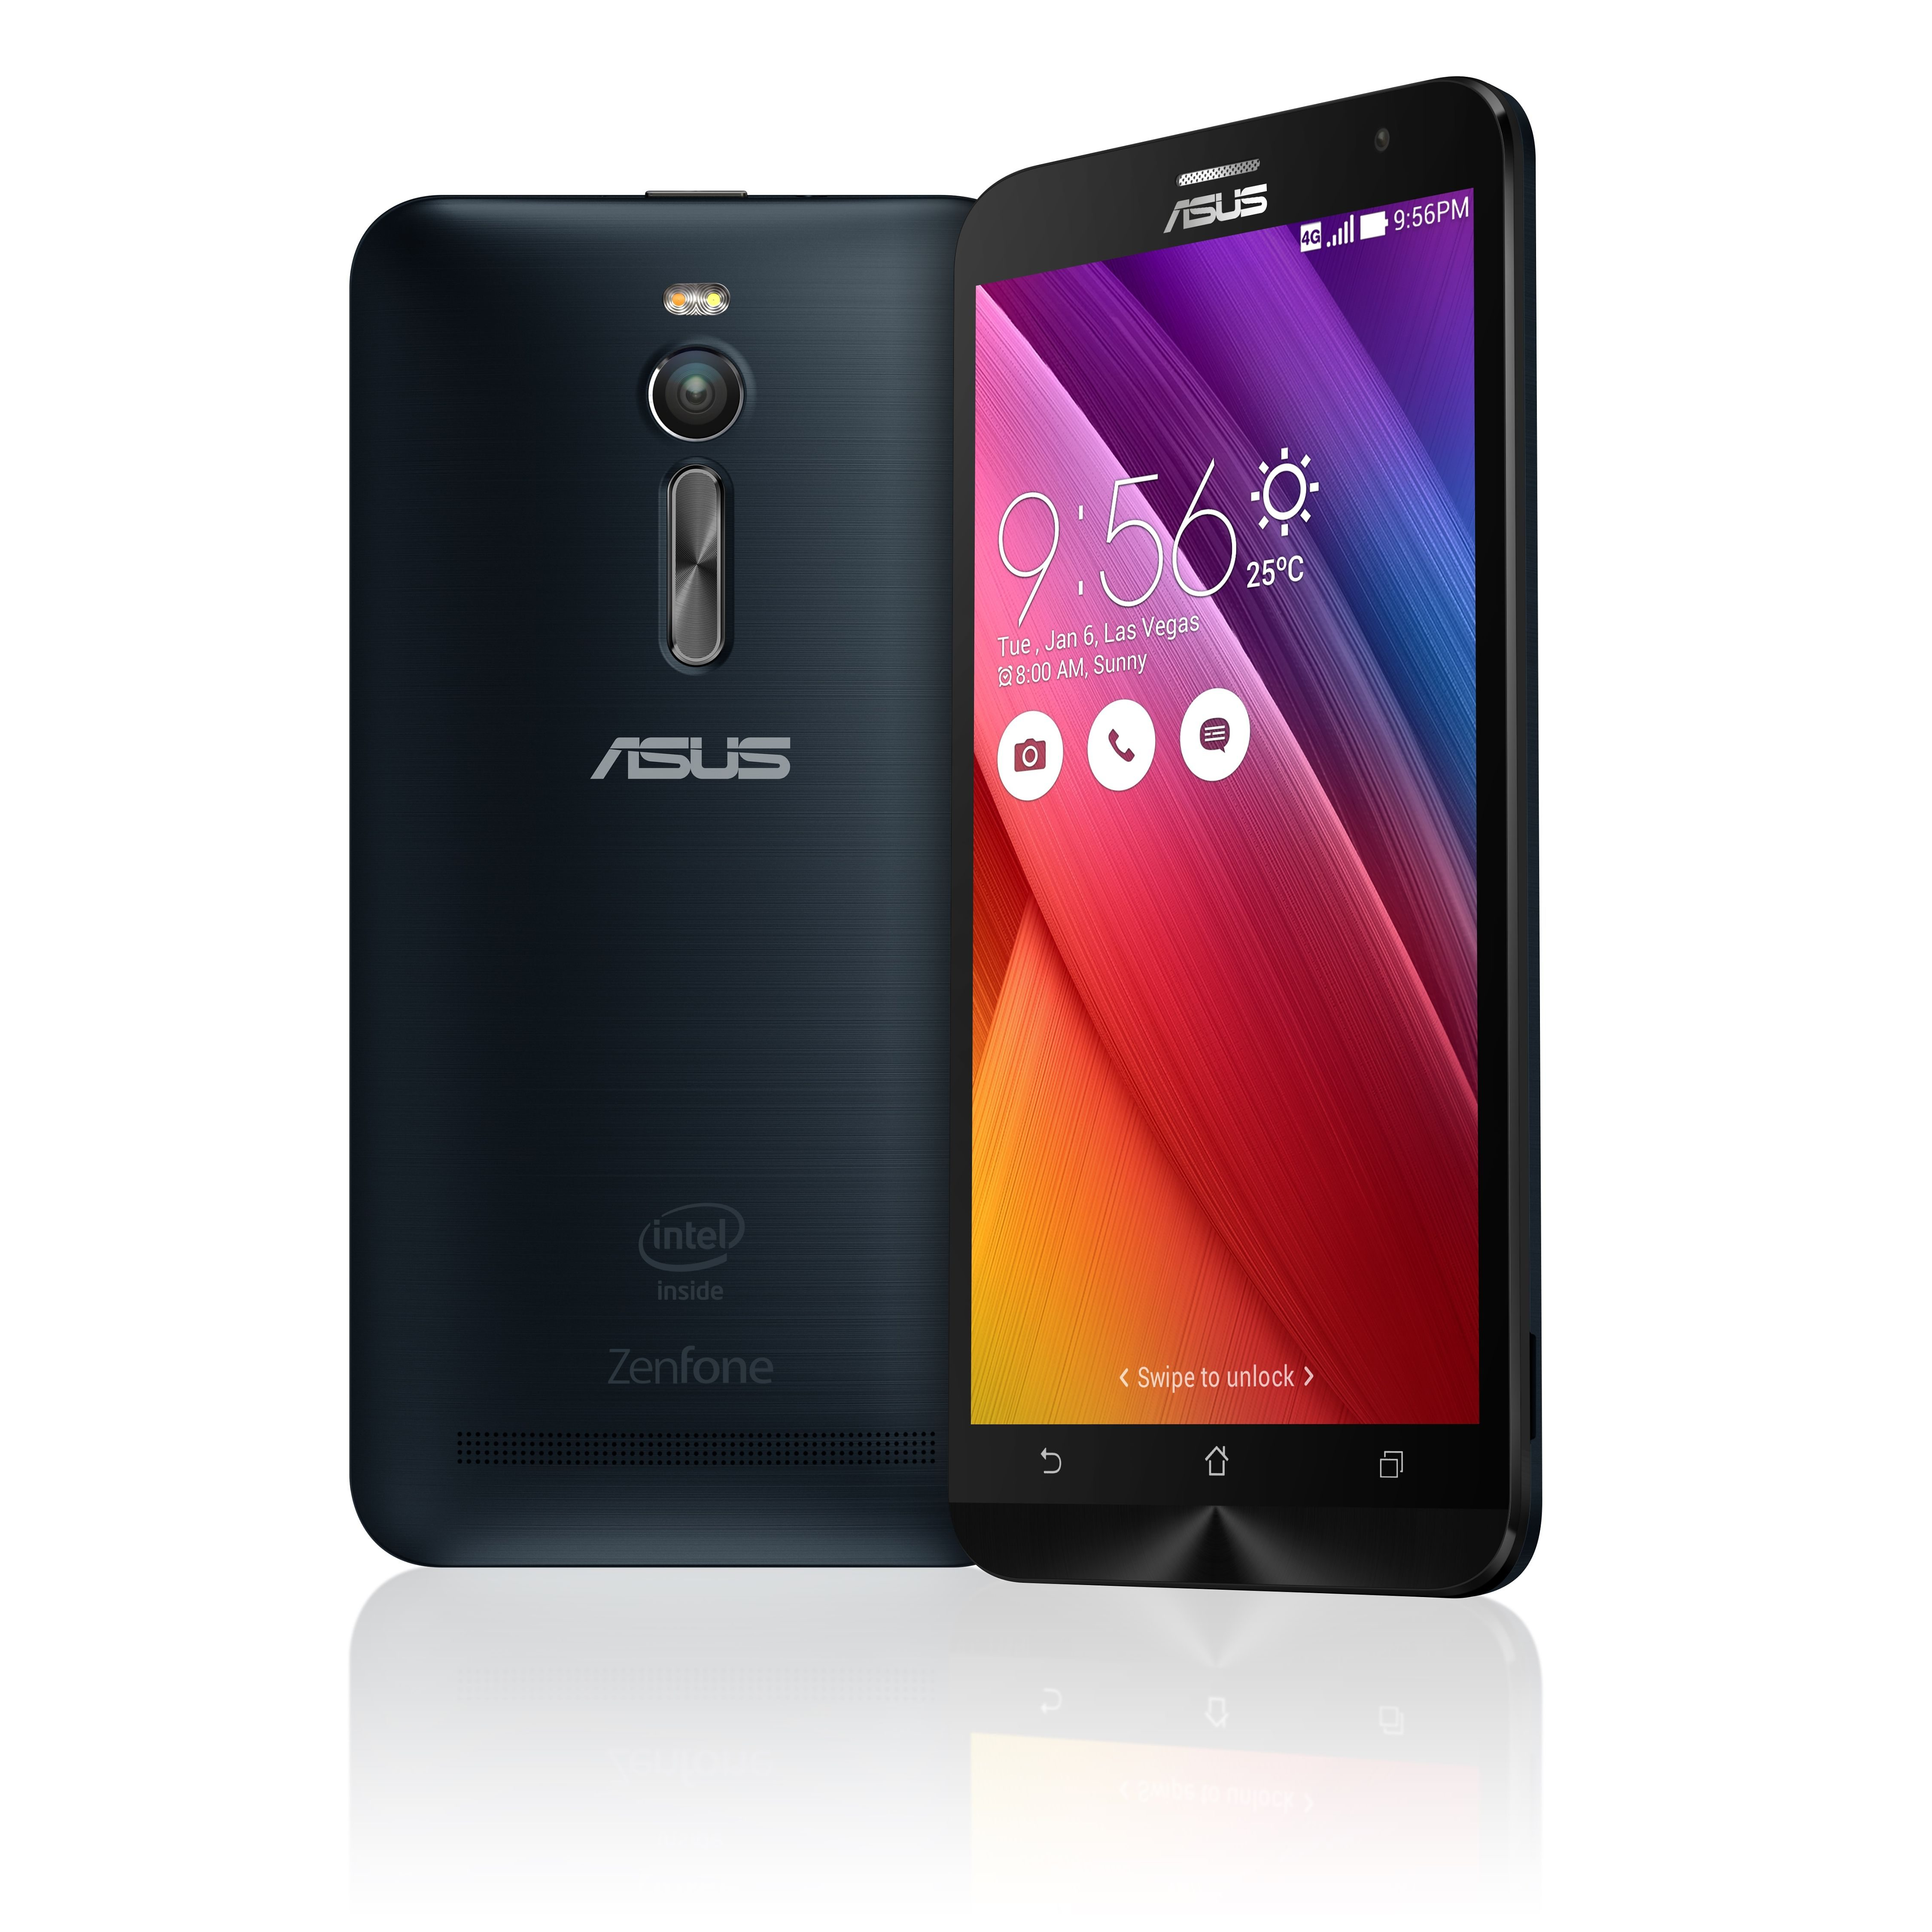 ASUS ZenFone 2 ZE551ML-6A739WW »Intel Atom Z3580, 13,9cm (5,5?), 32GB, 4 GB«